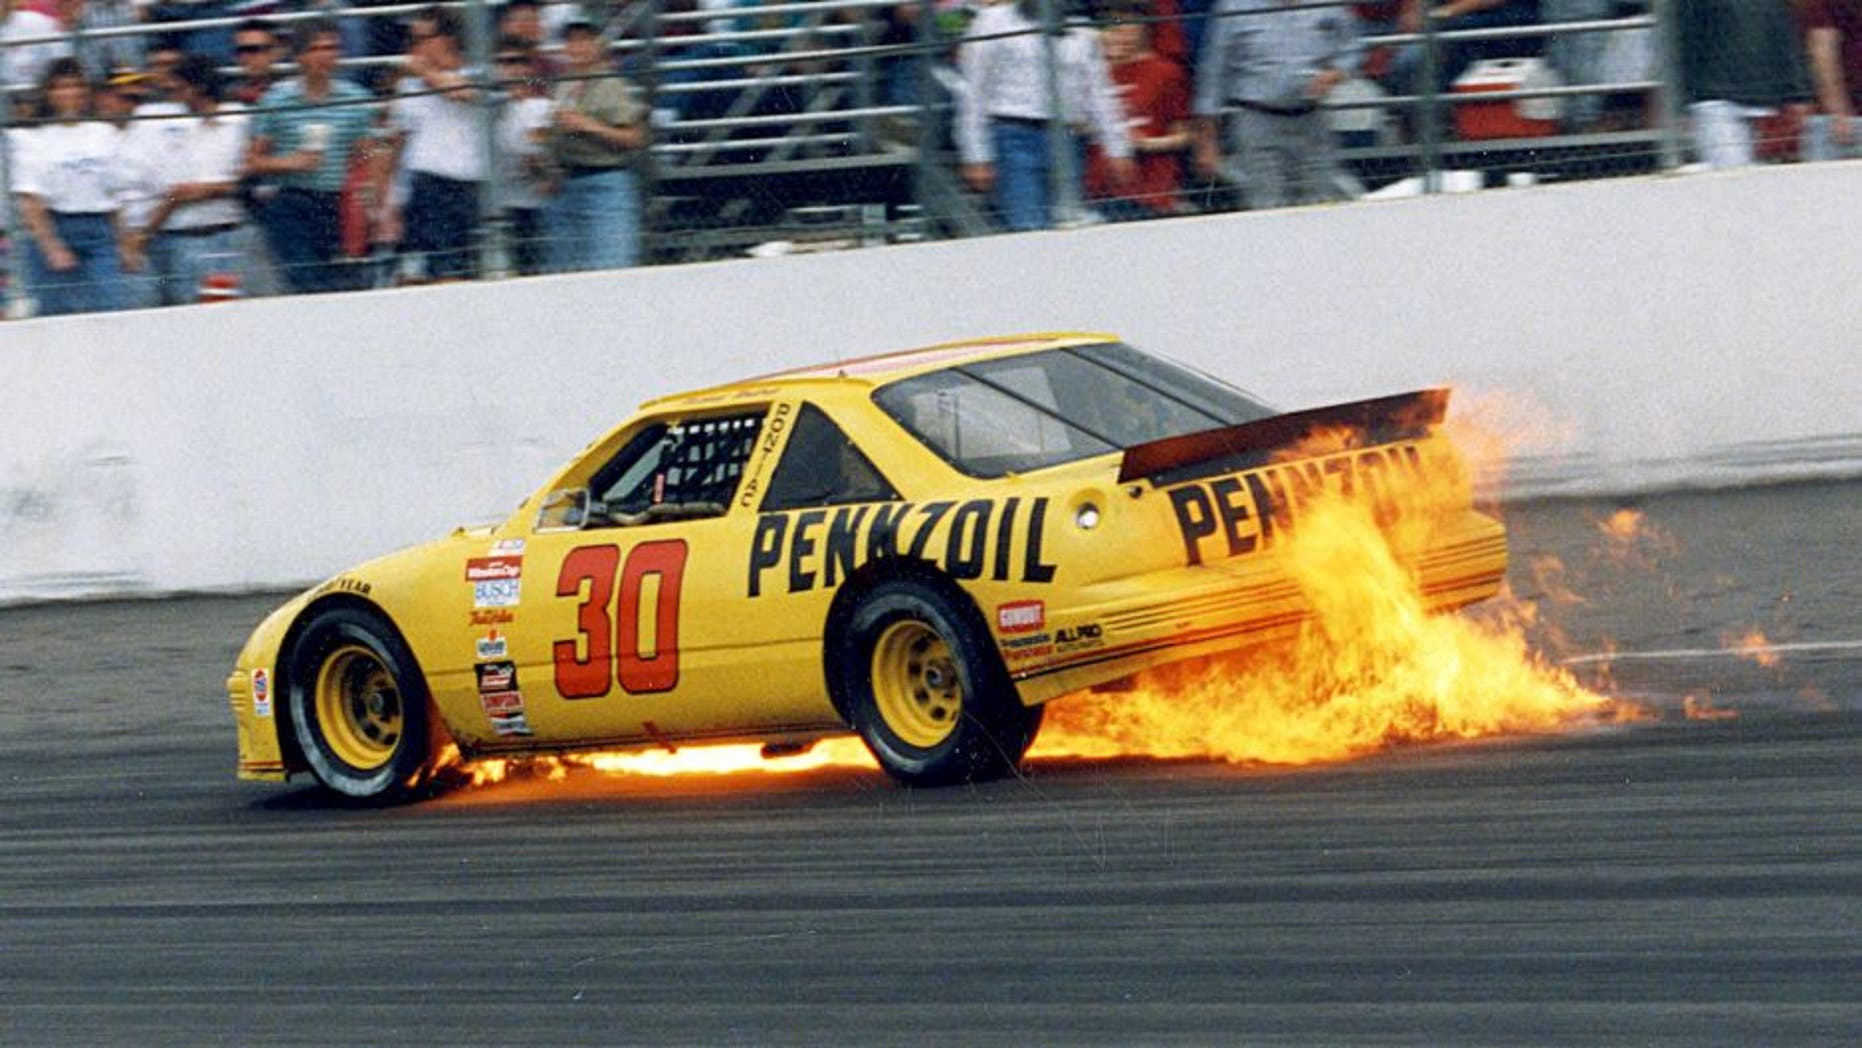 RICHMOND, VA ? March 8, 1992: Michael Waltrip?s Pontiac provides a bit of ?excitement? of its own as he exits in spectacular fashion during the Pontiac Excitement 400 NASCAR Cup race at Richmond International Raceway. The engine blew in Waltrip?s Pennzoil Pontiac on lap 259. (Photo by ISC Images & Archives via Getty Images)